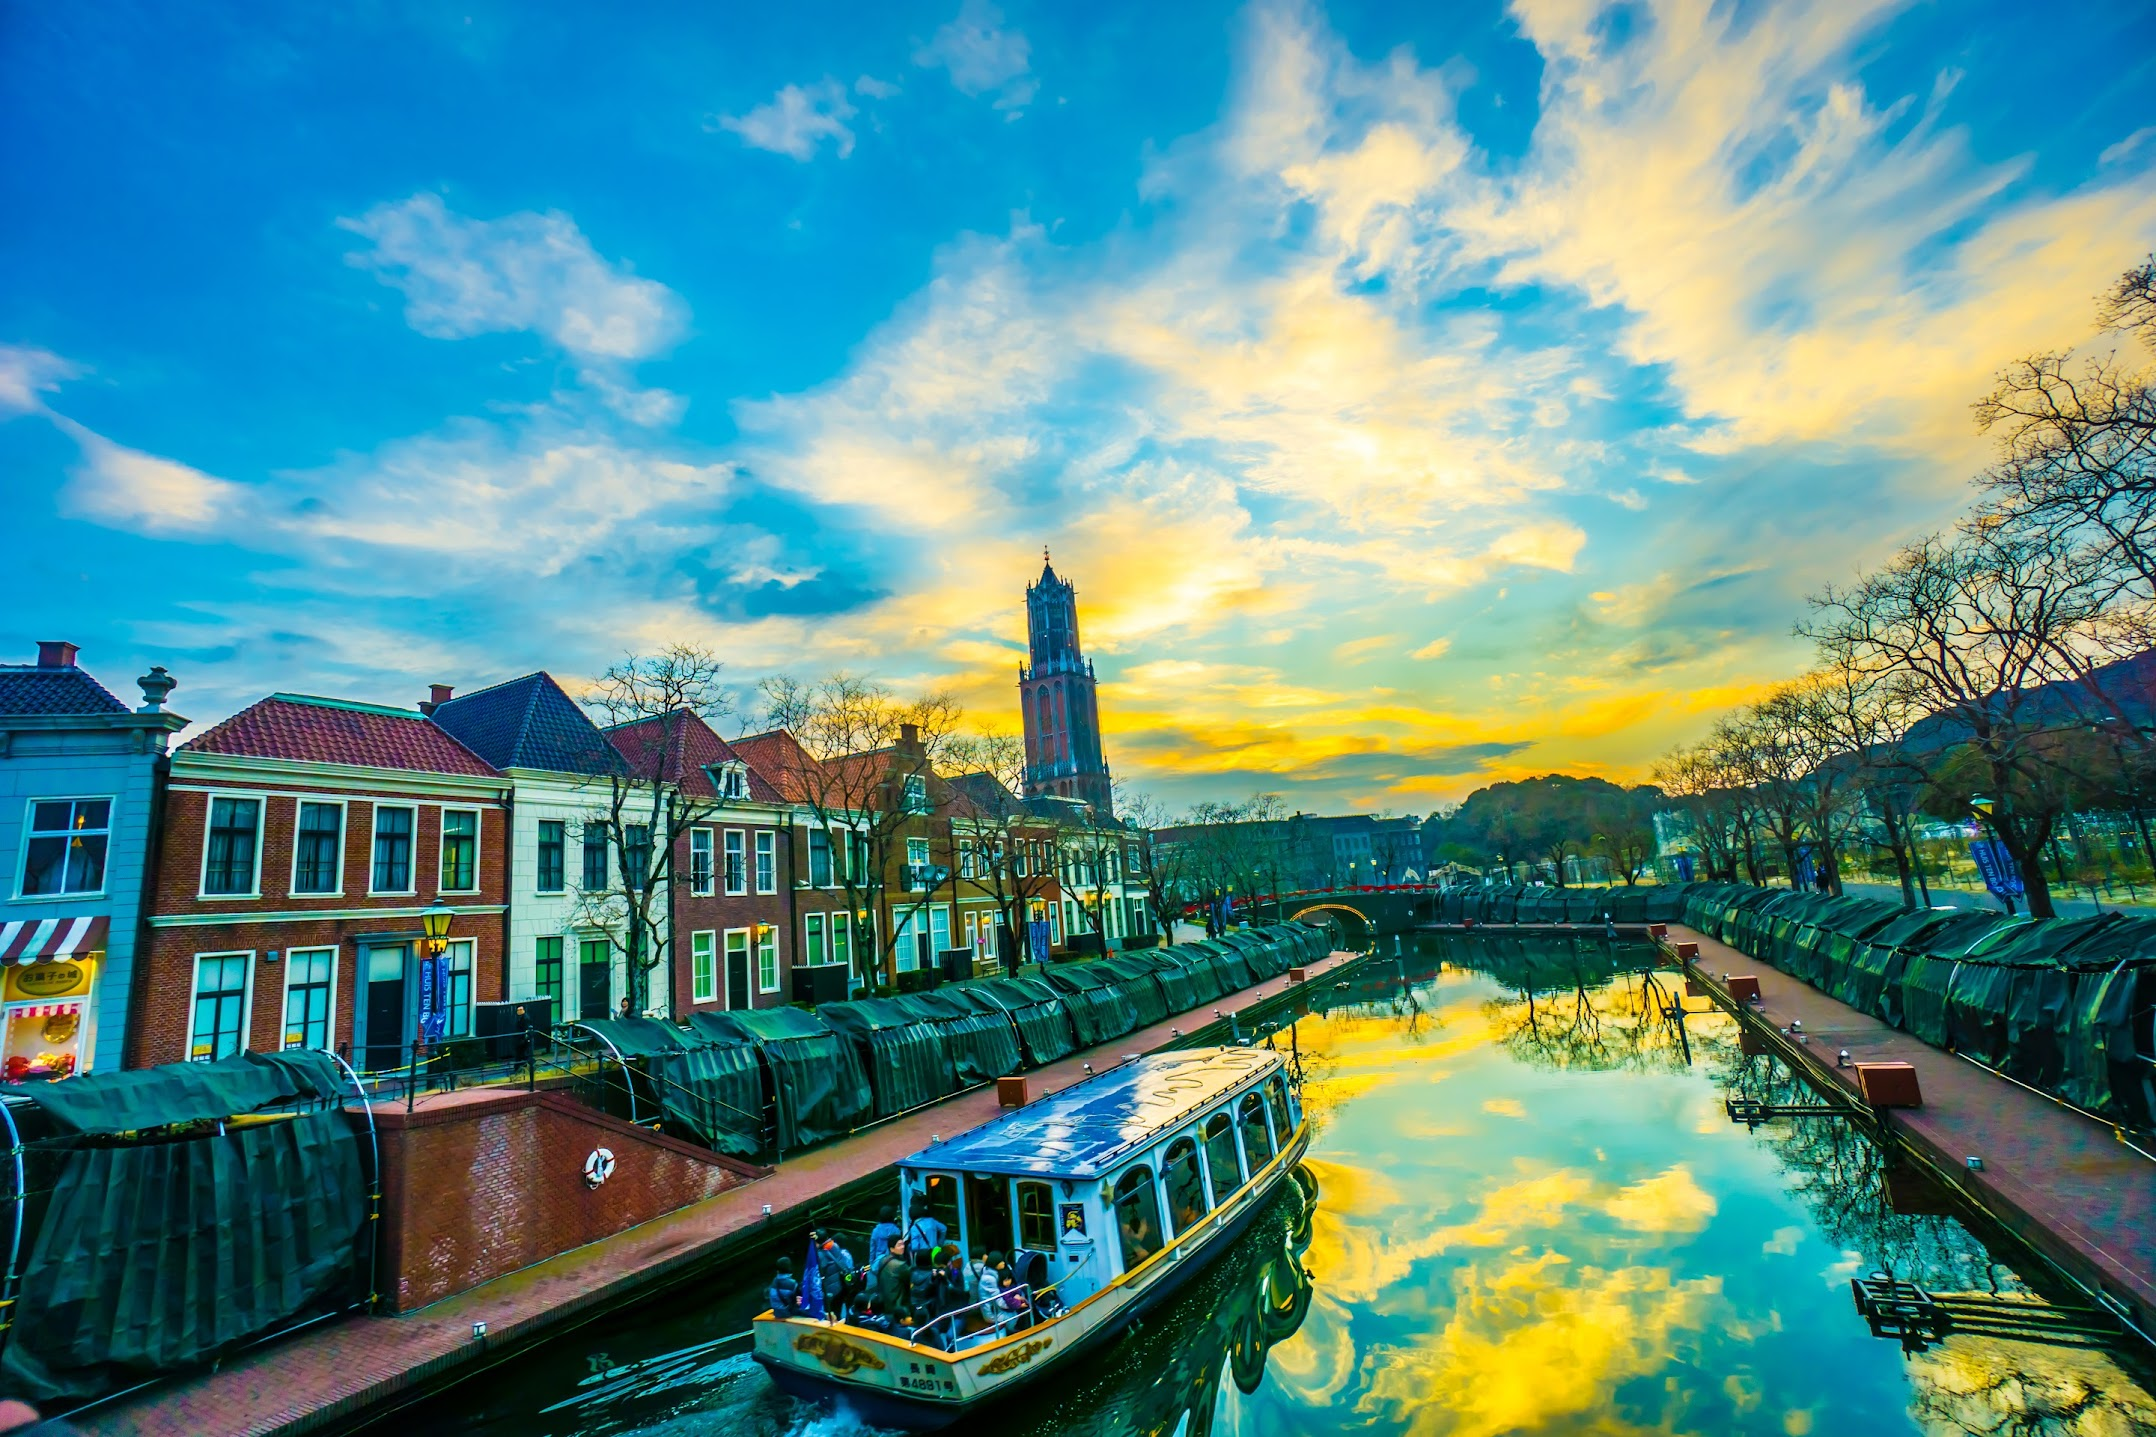 Huis Ten Bosch Canal Cruiser sundown4